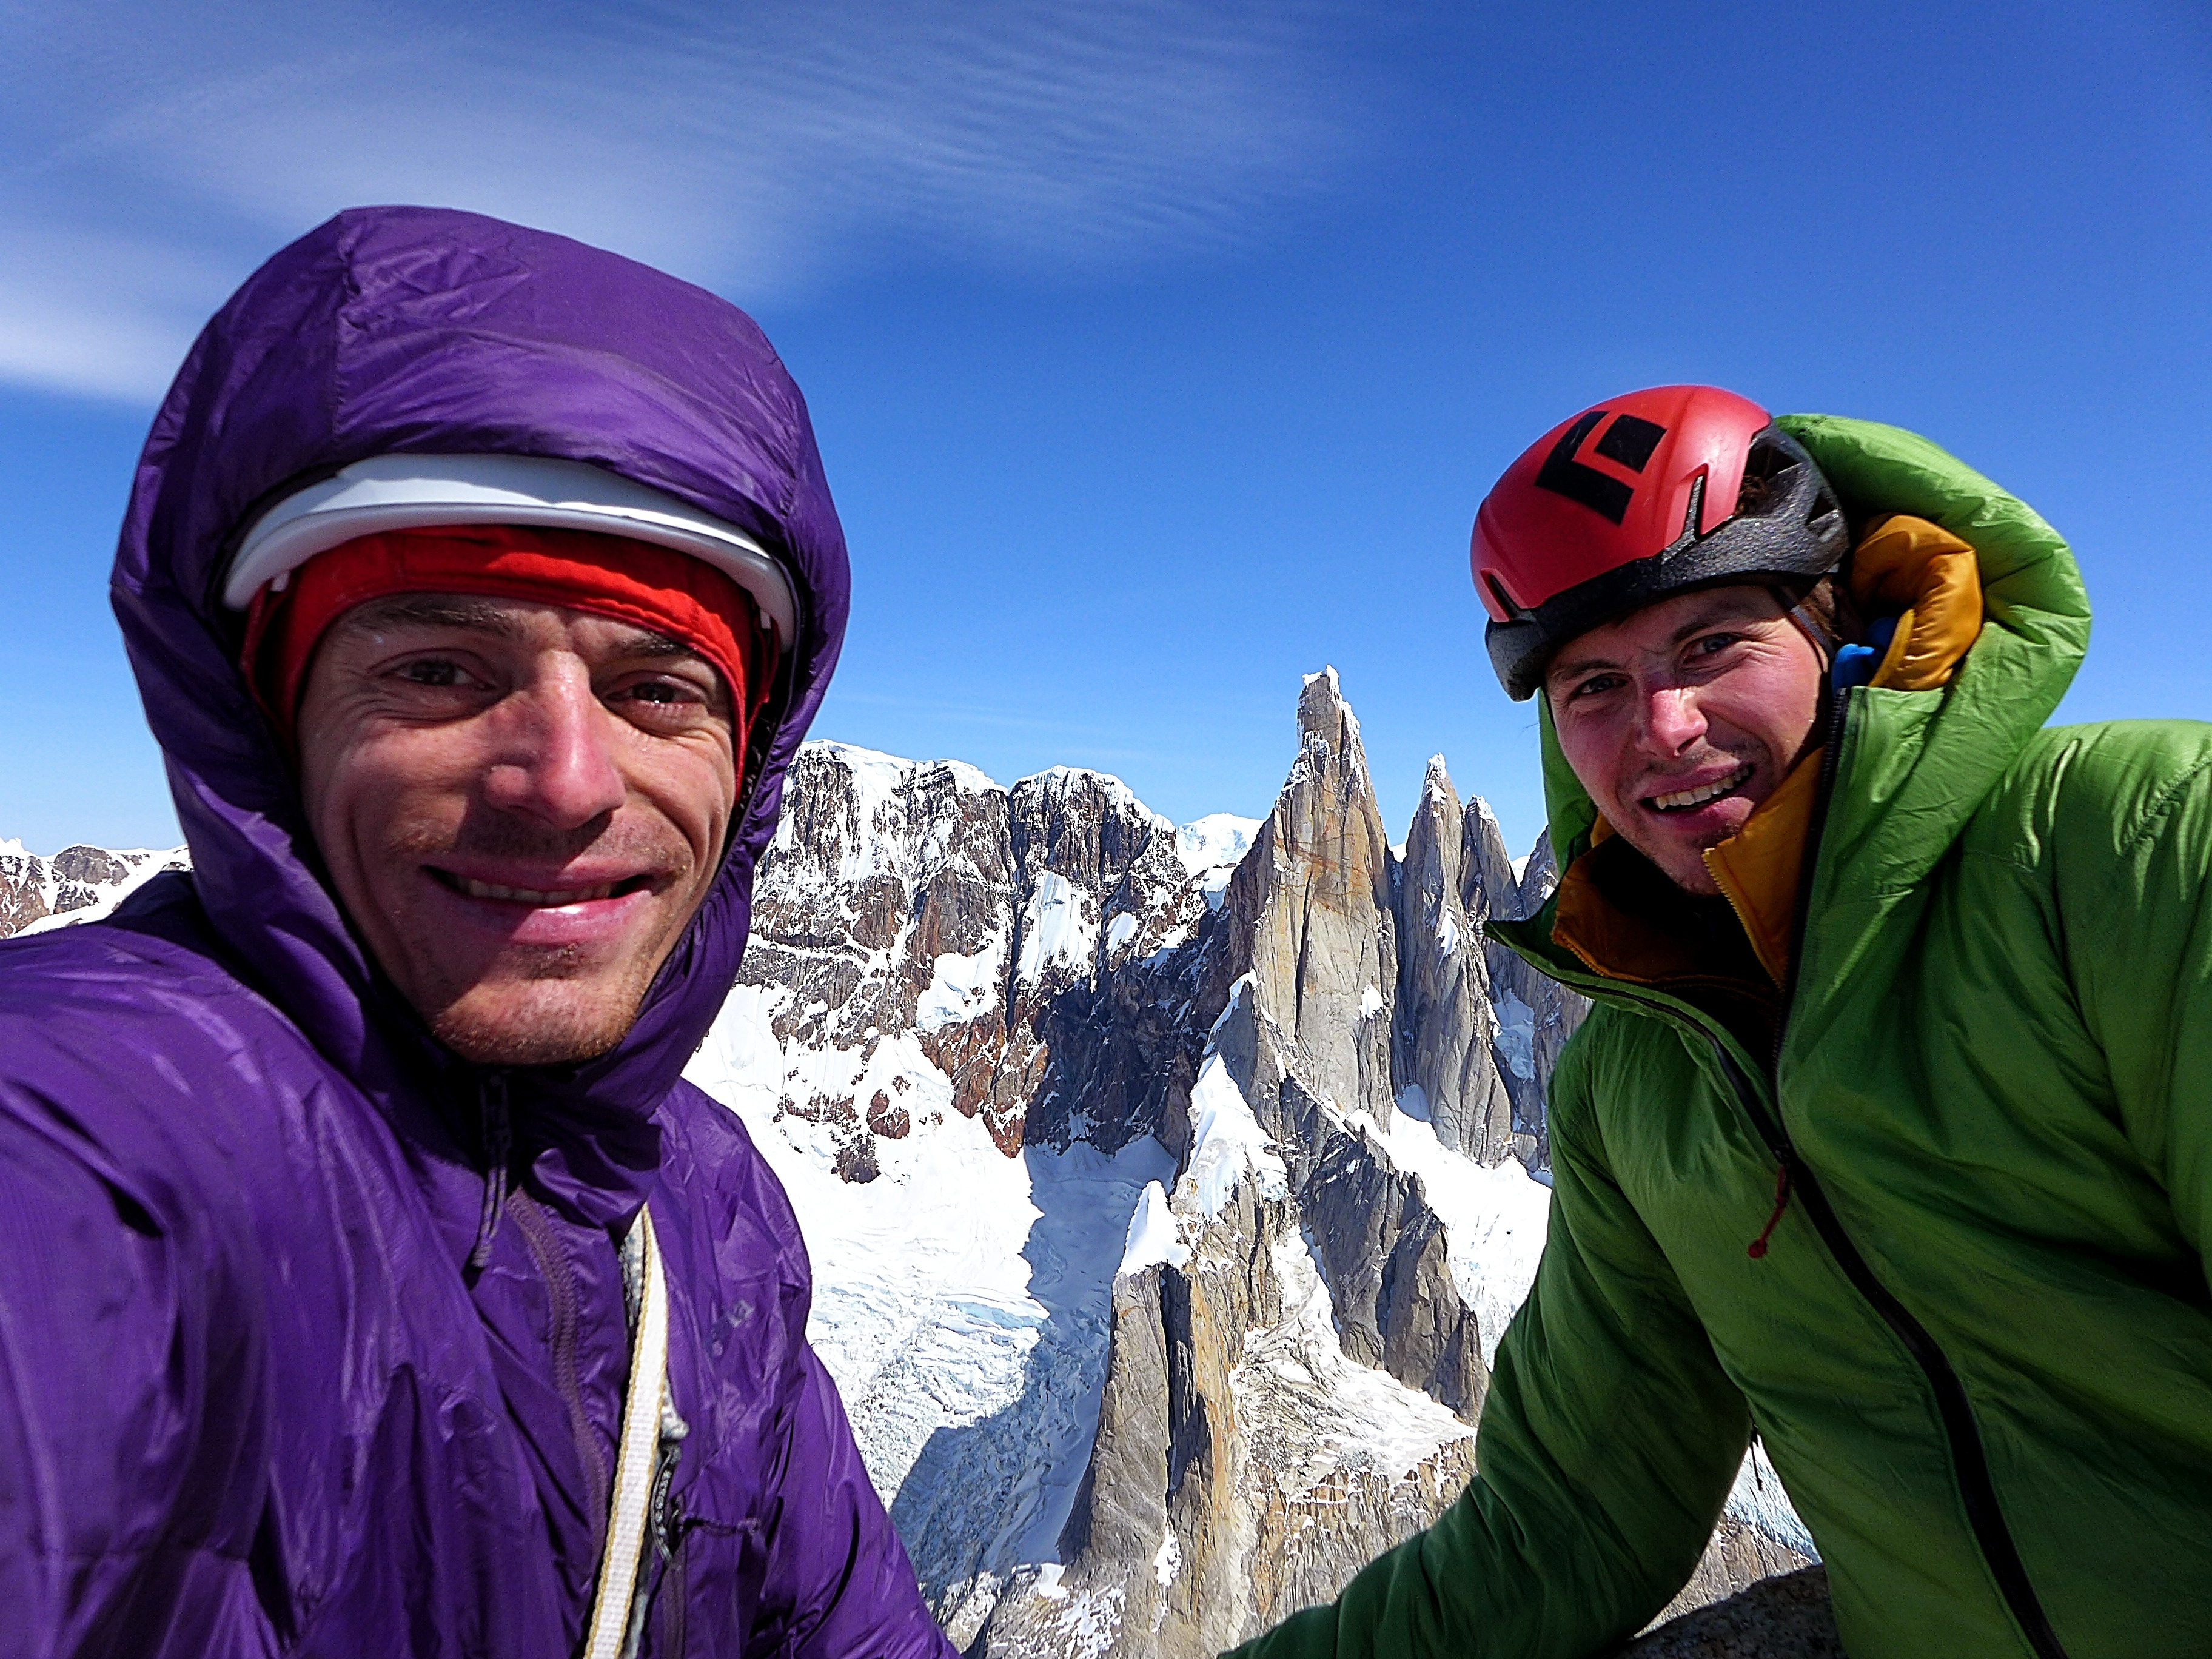 Luka Krajnc (left) Luka Lindič atop Aguja St. Exupery following the first ascent of Mir on the south face.